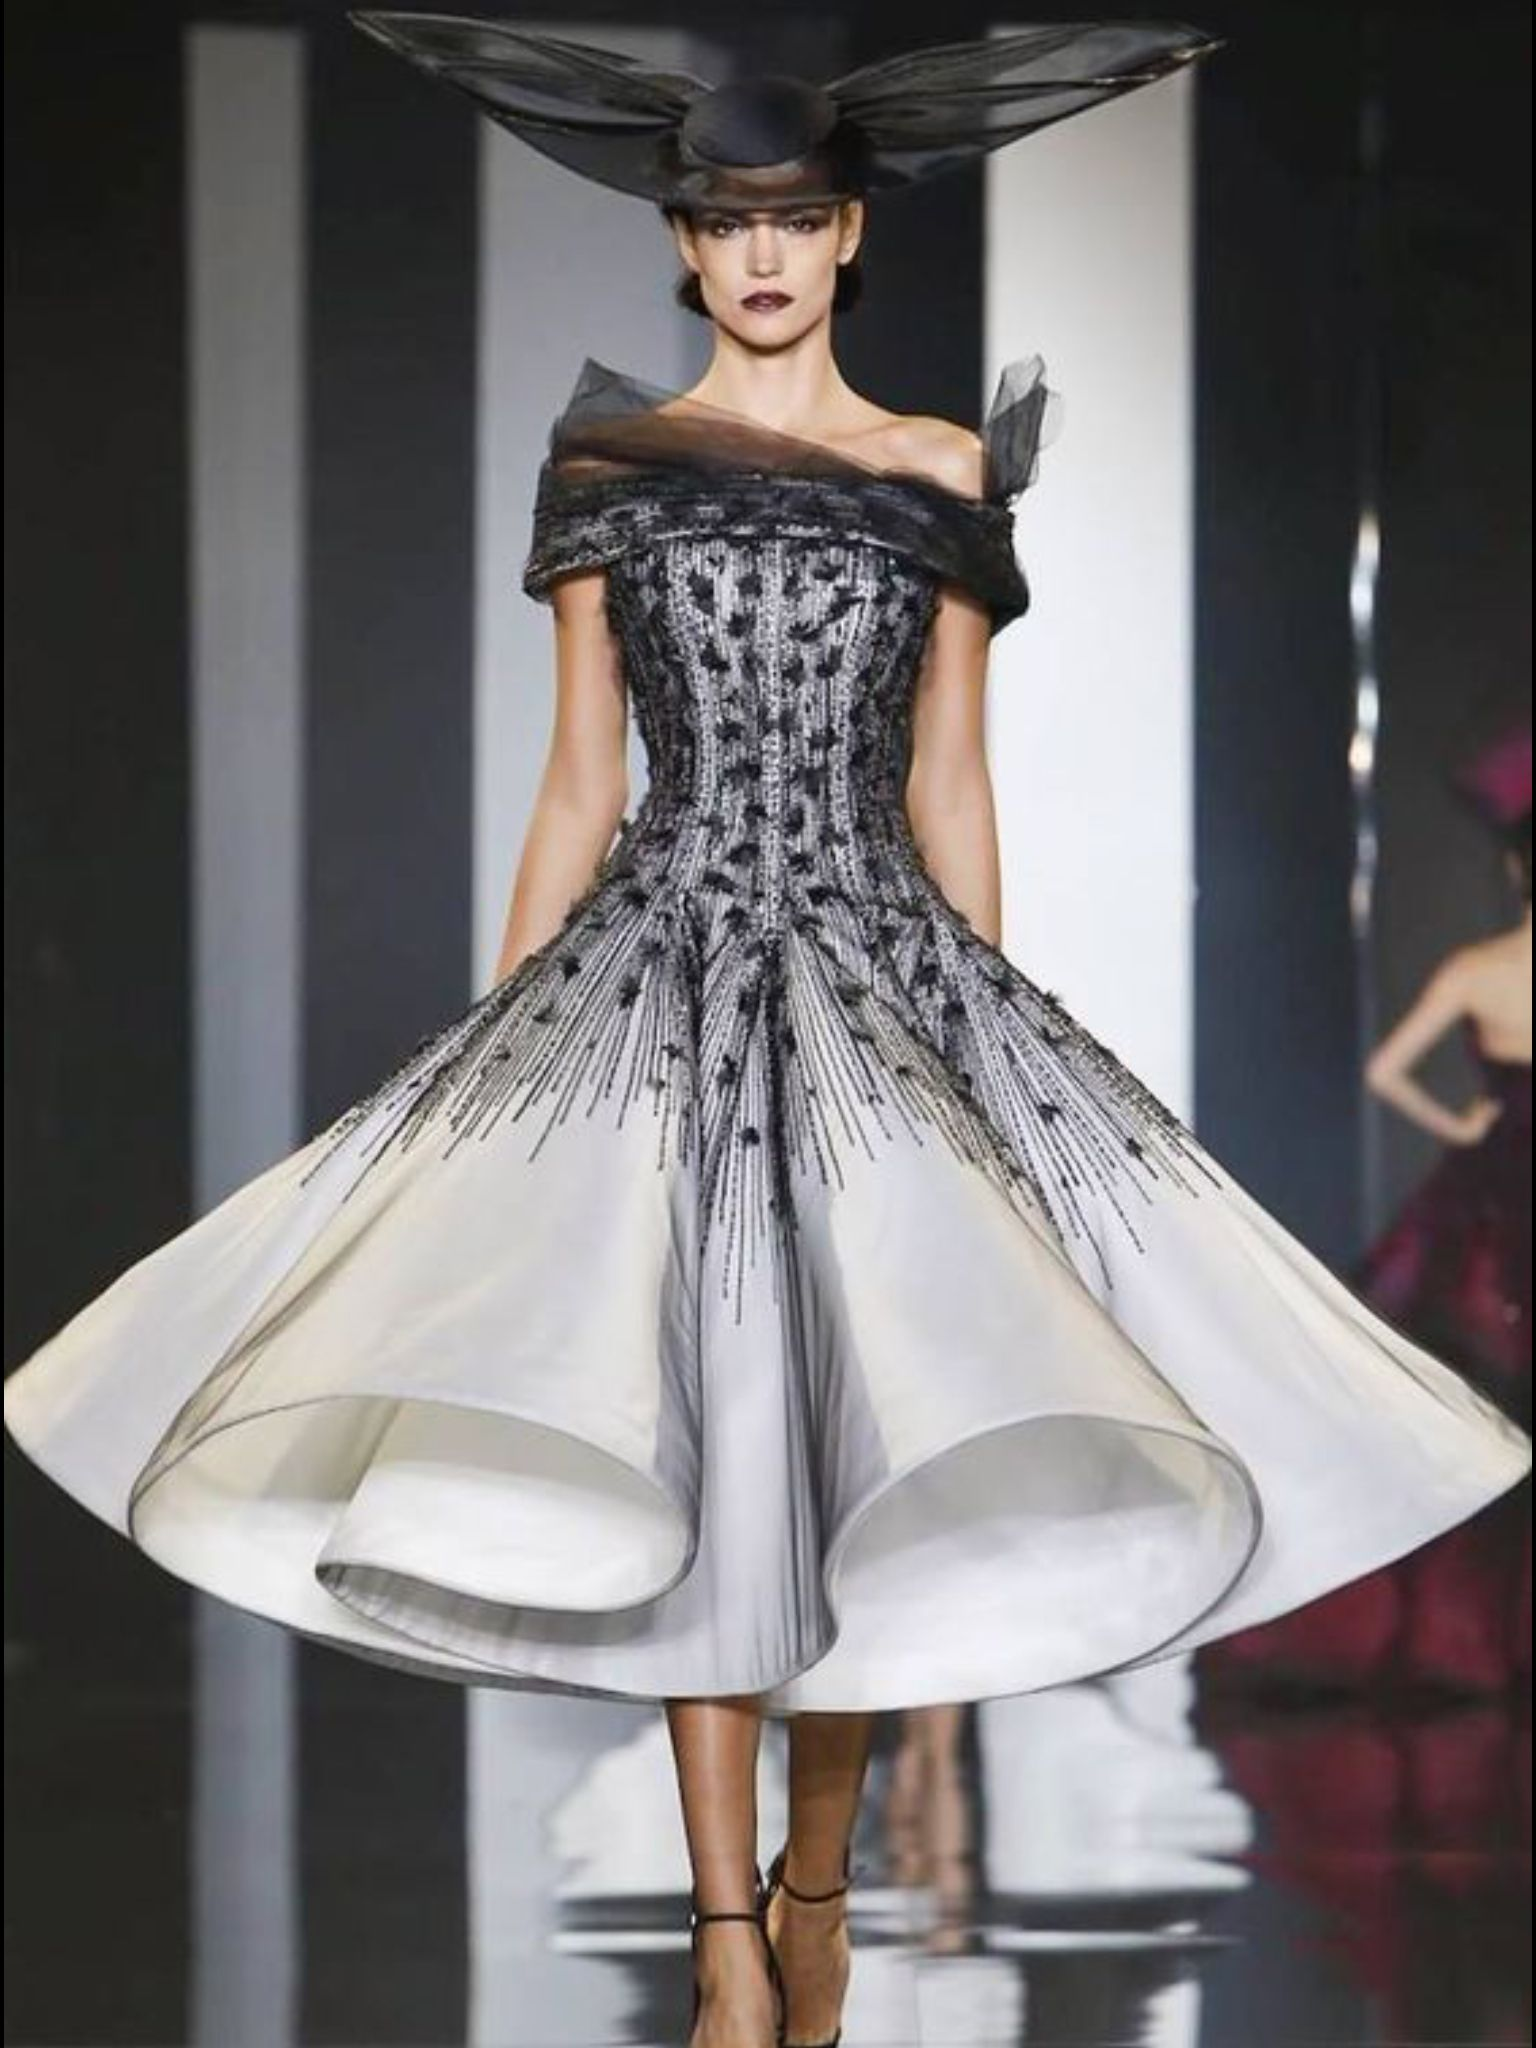 Pin by Virgil Fairbanks on Fashion | Pinterest | Gowns, Couture and ...